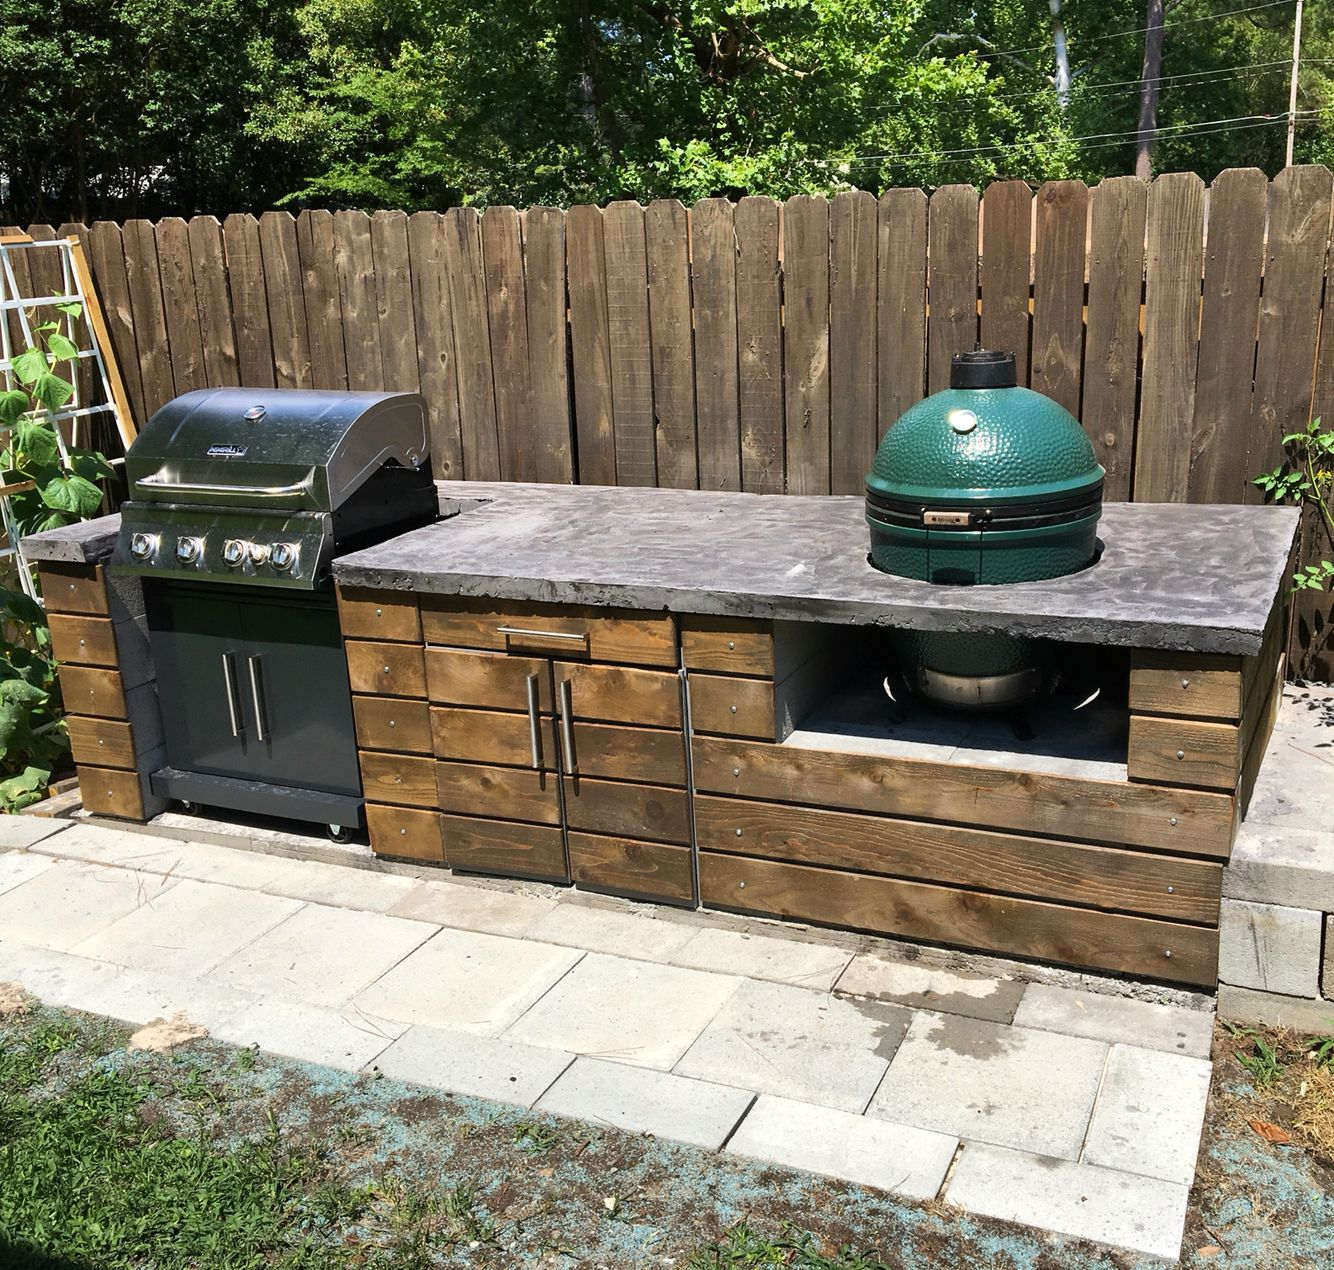 Outdoor kitchen with Big Green Egg in 2019 | Big green egg ...